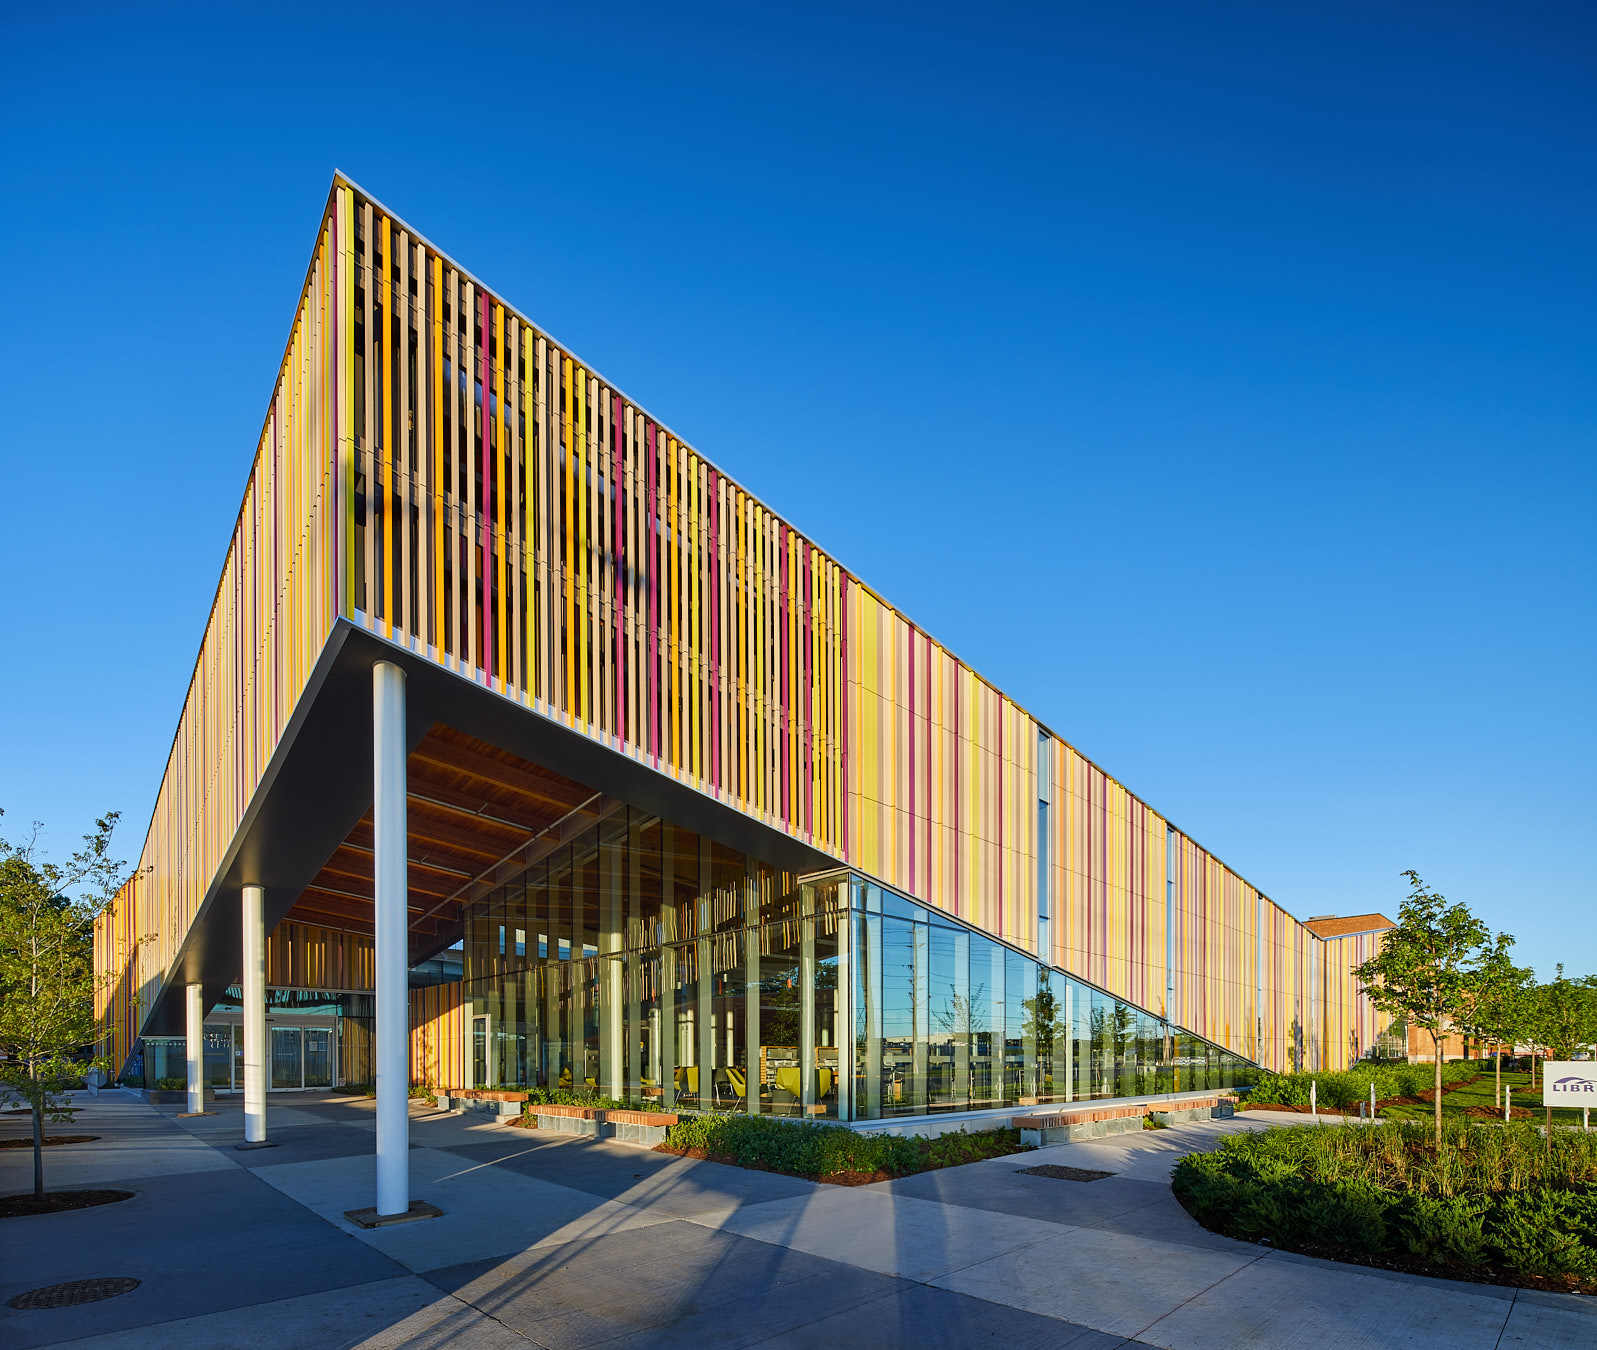 Albion library perkins will canada archdaily for New construction design ideas